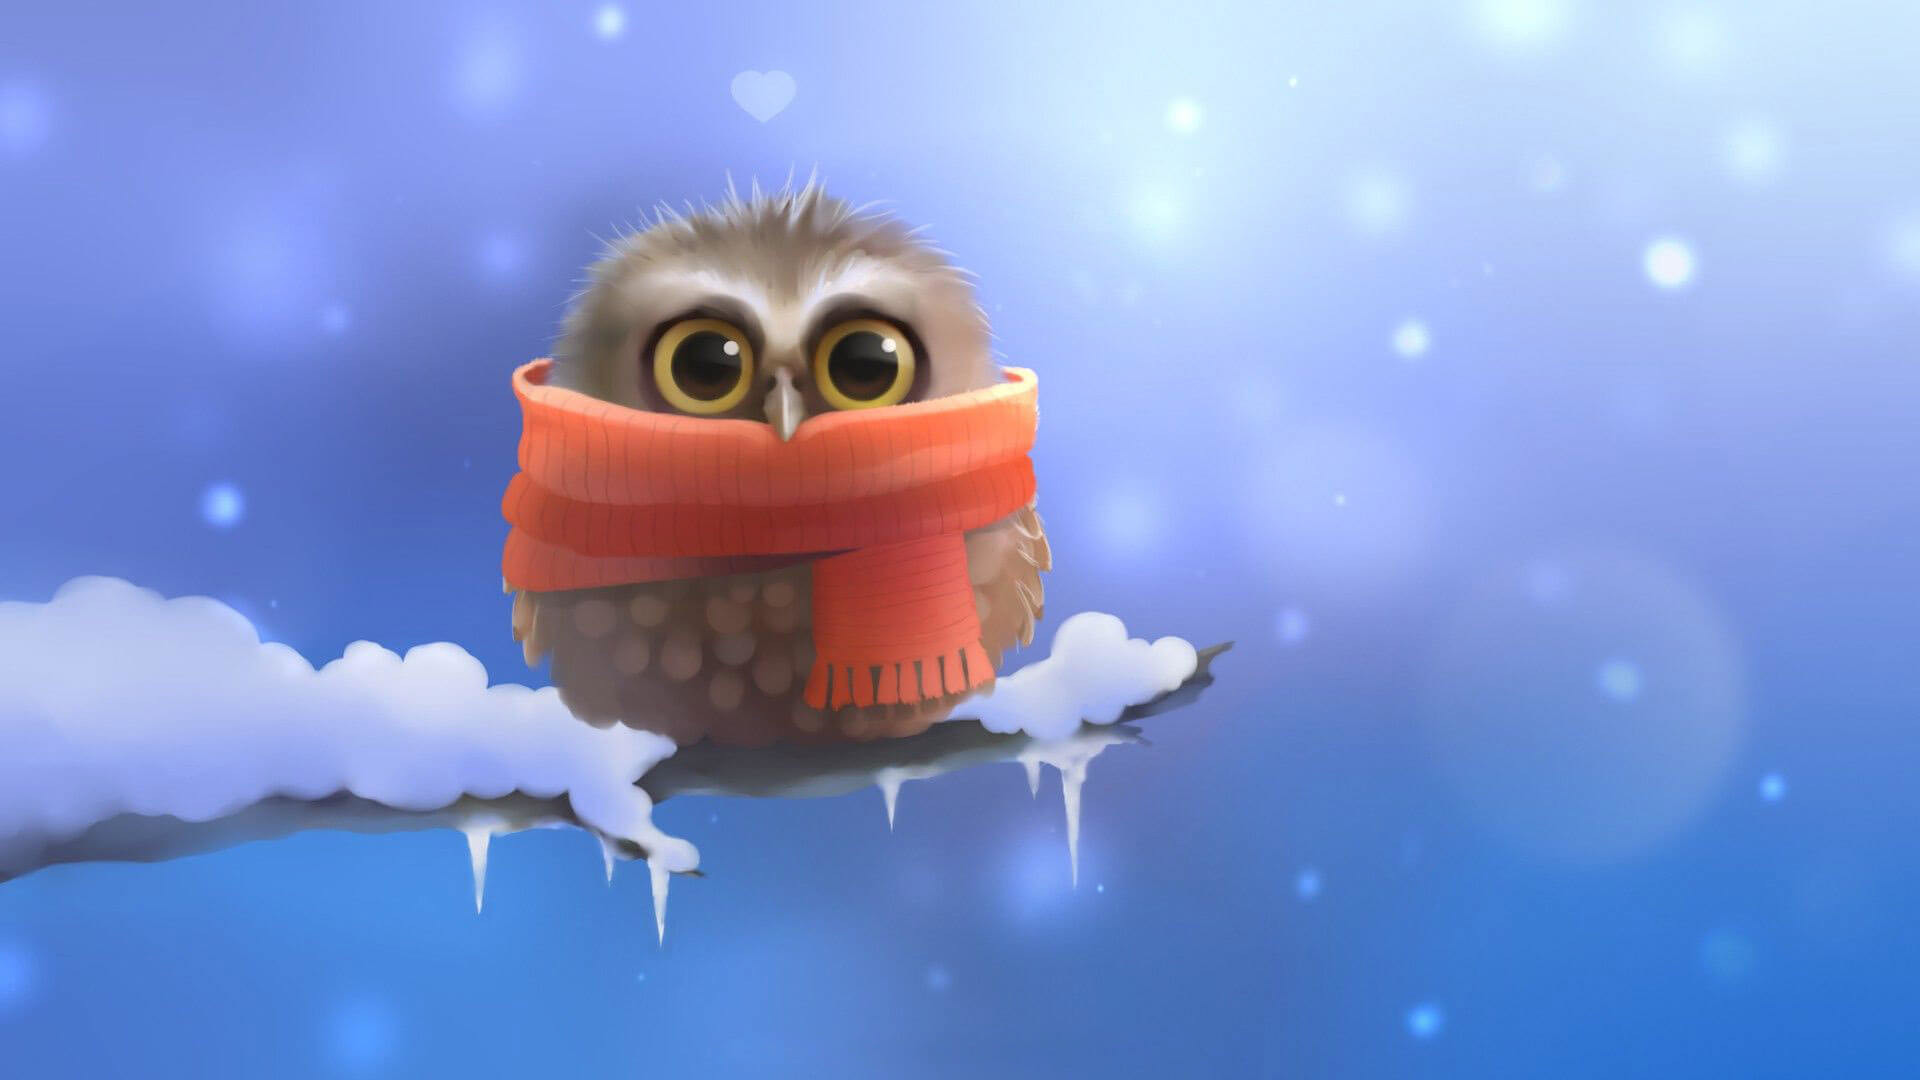 Res: 1920x1080, Cute Winter Backgrounds